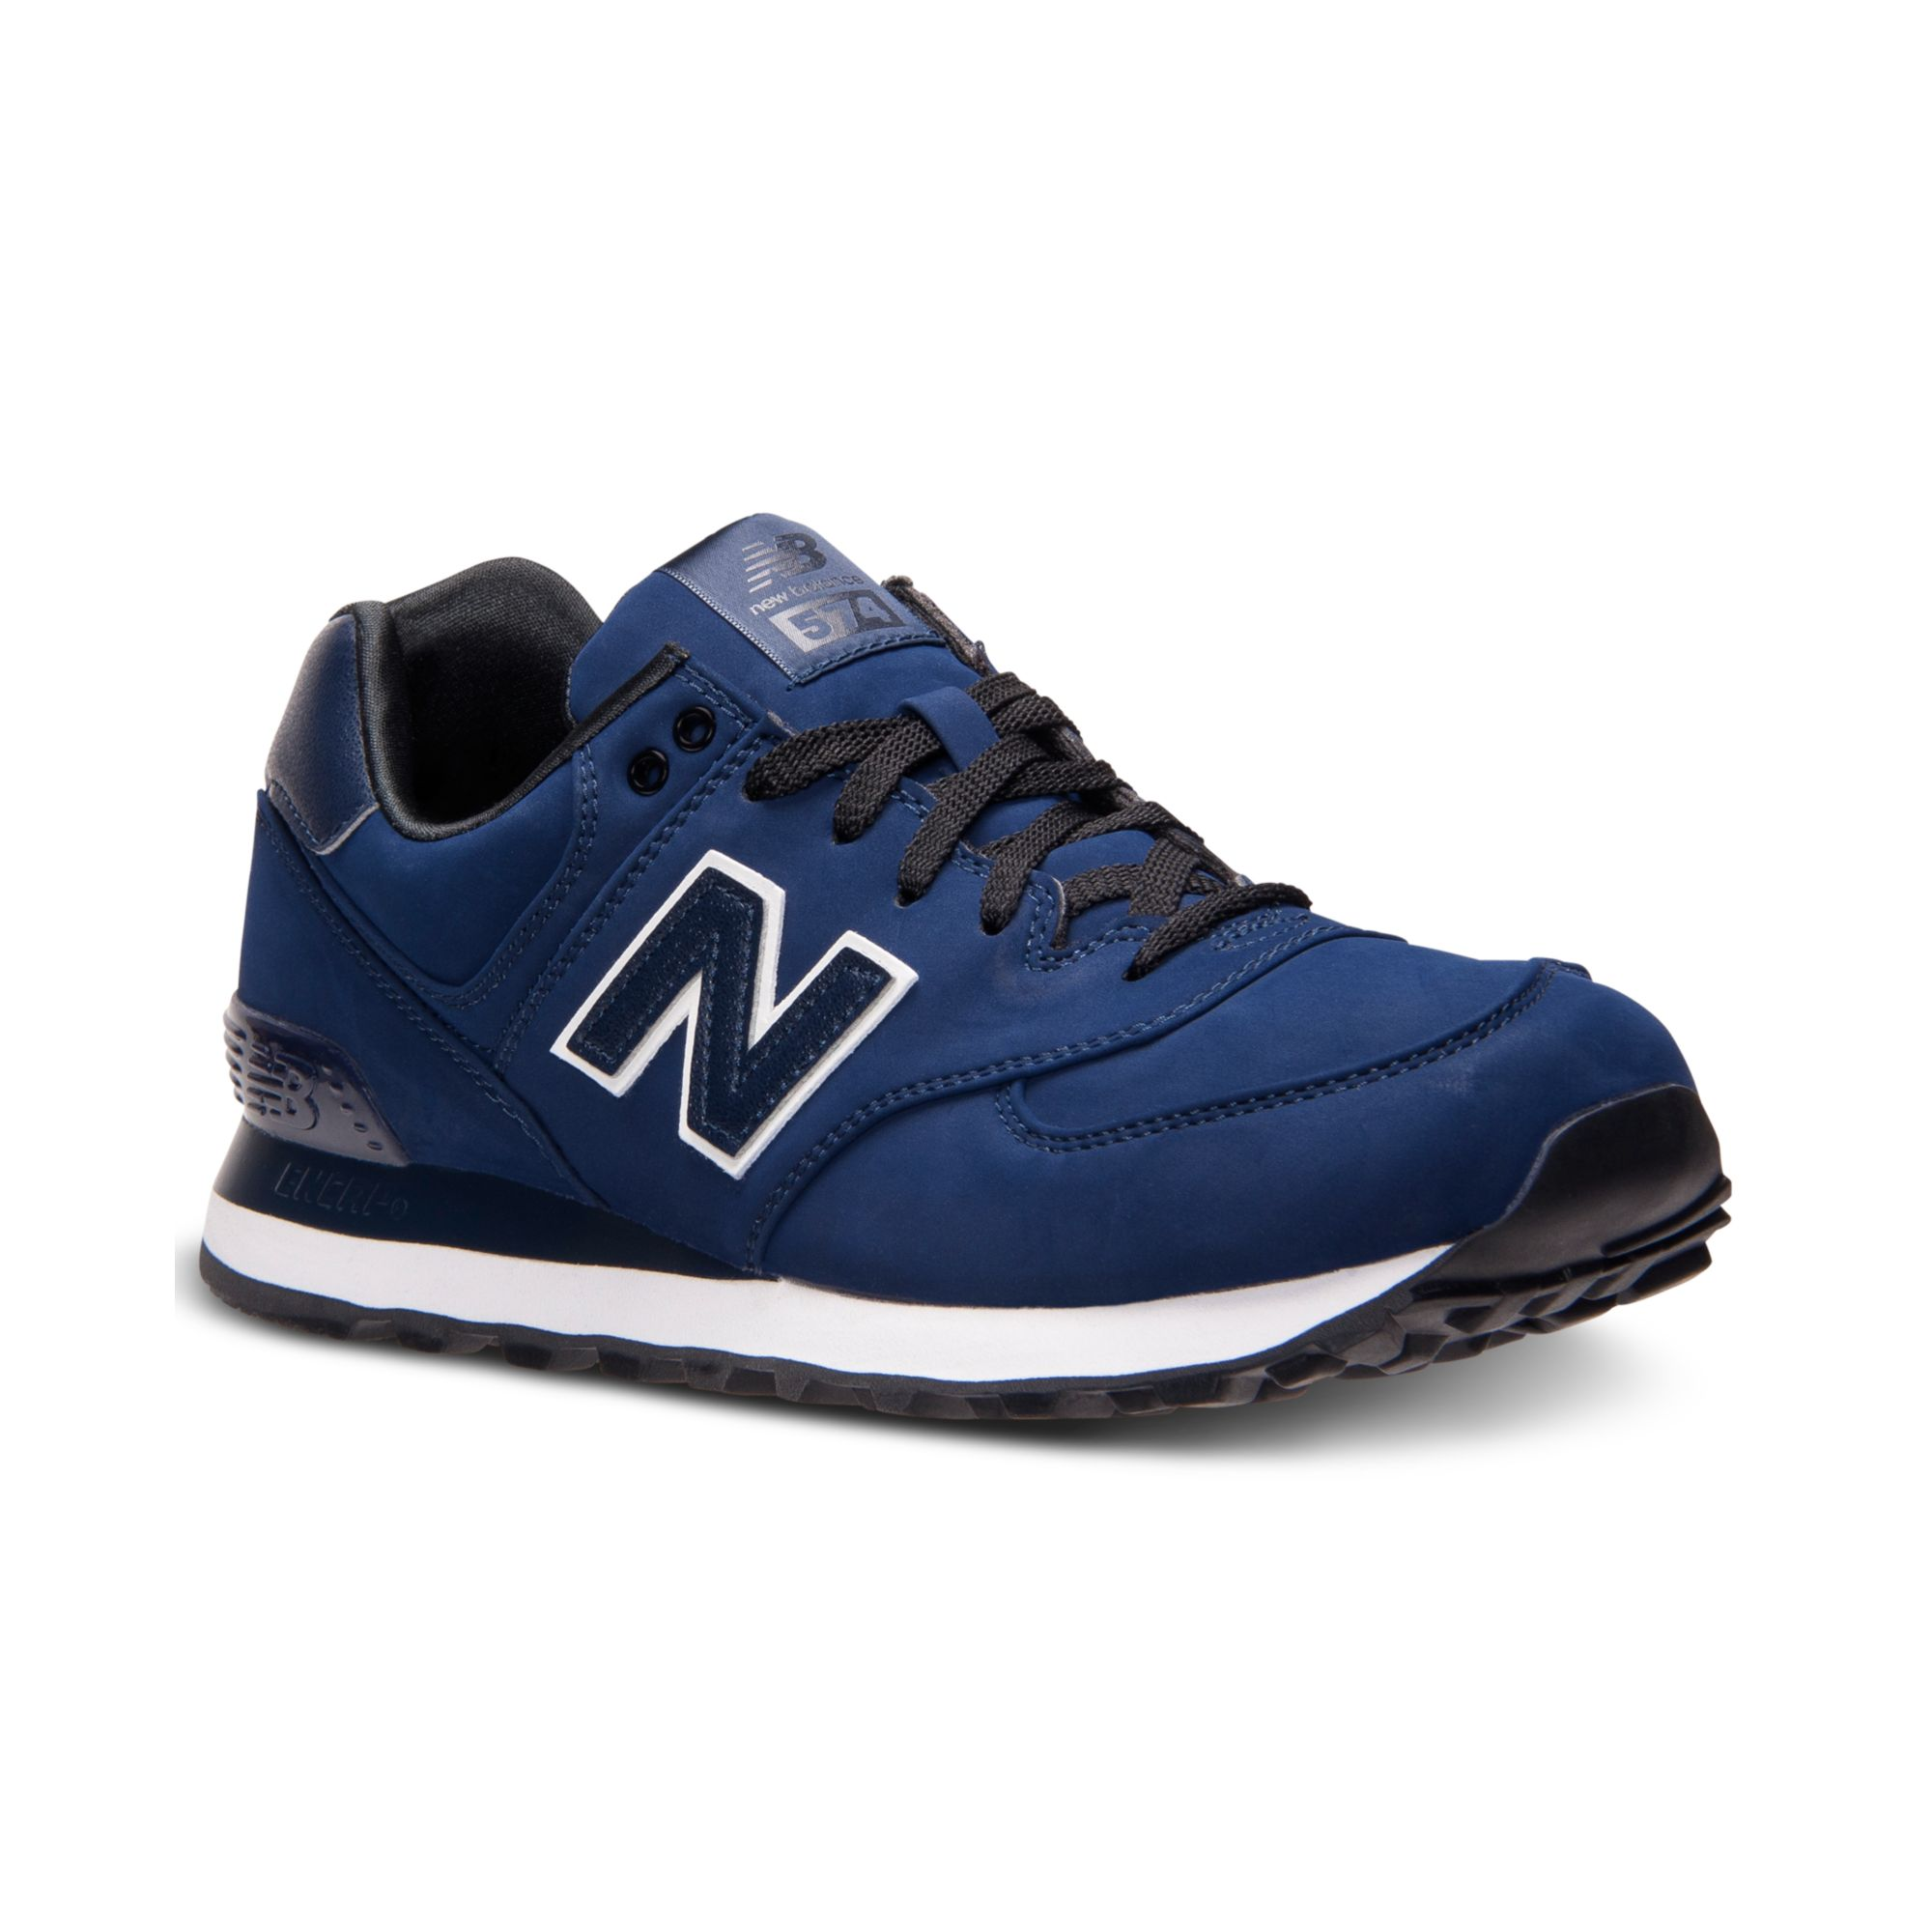 New Balance 574 Casual Sneakers In Blue For Men Lyst